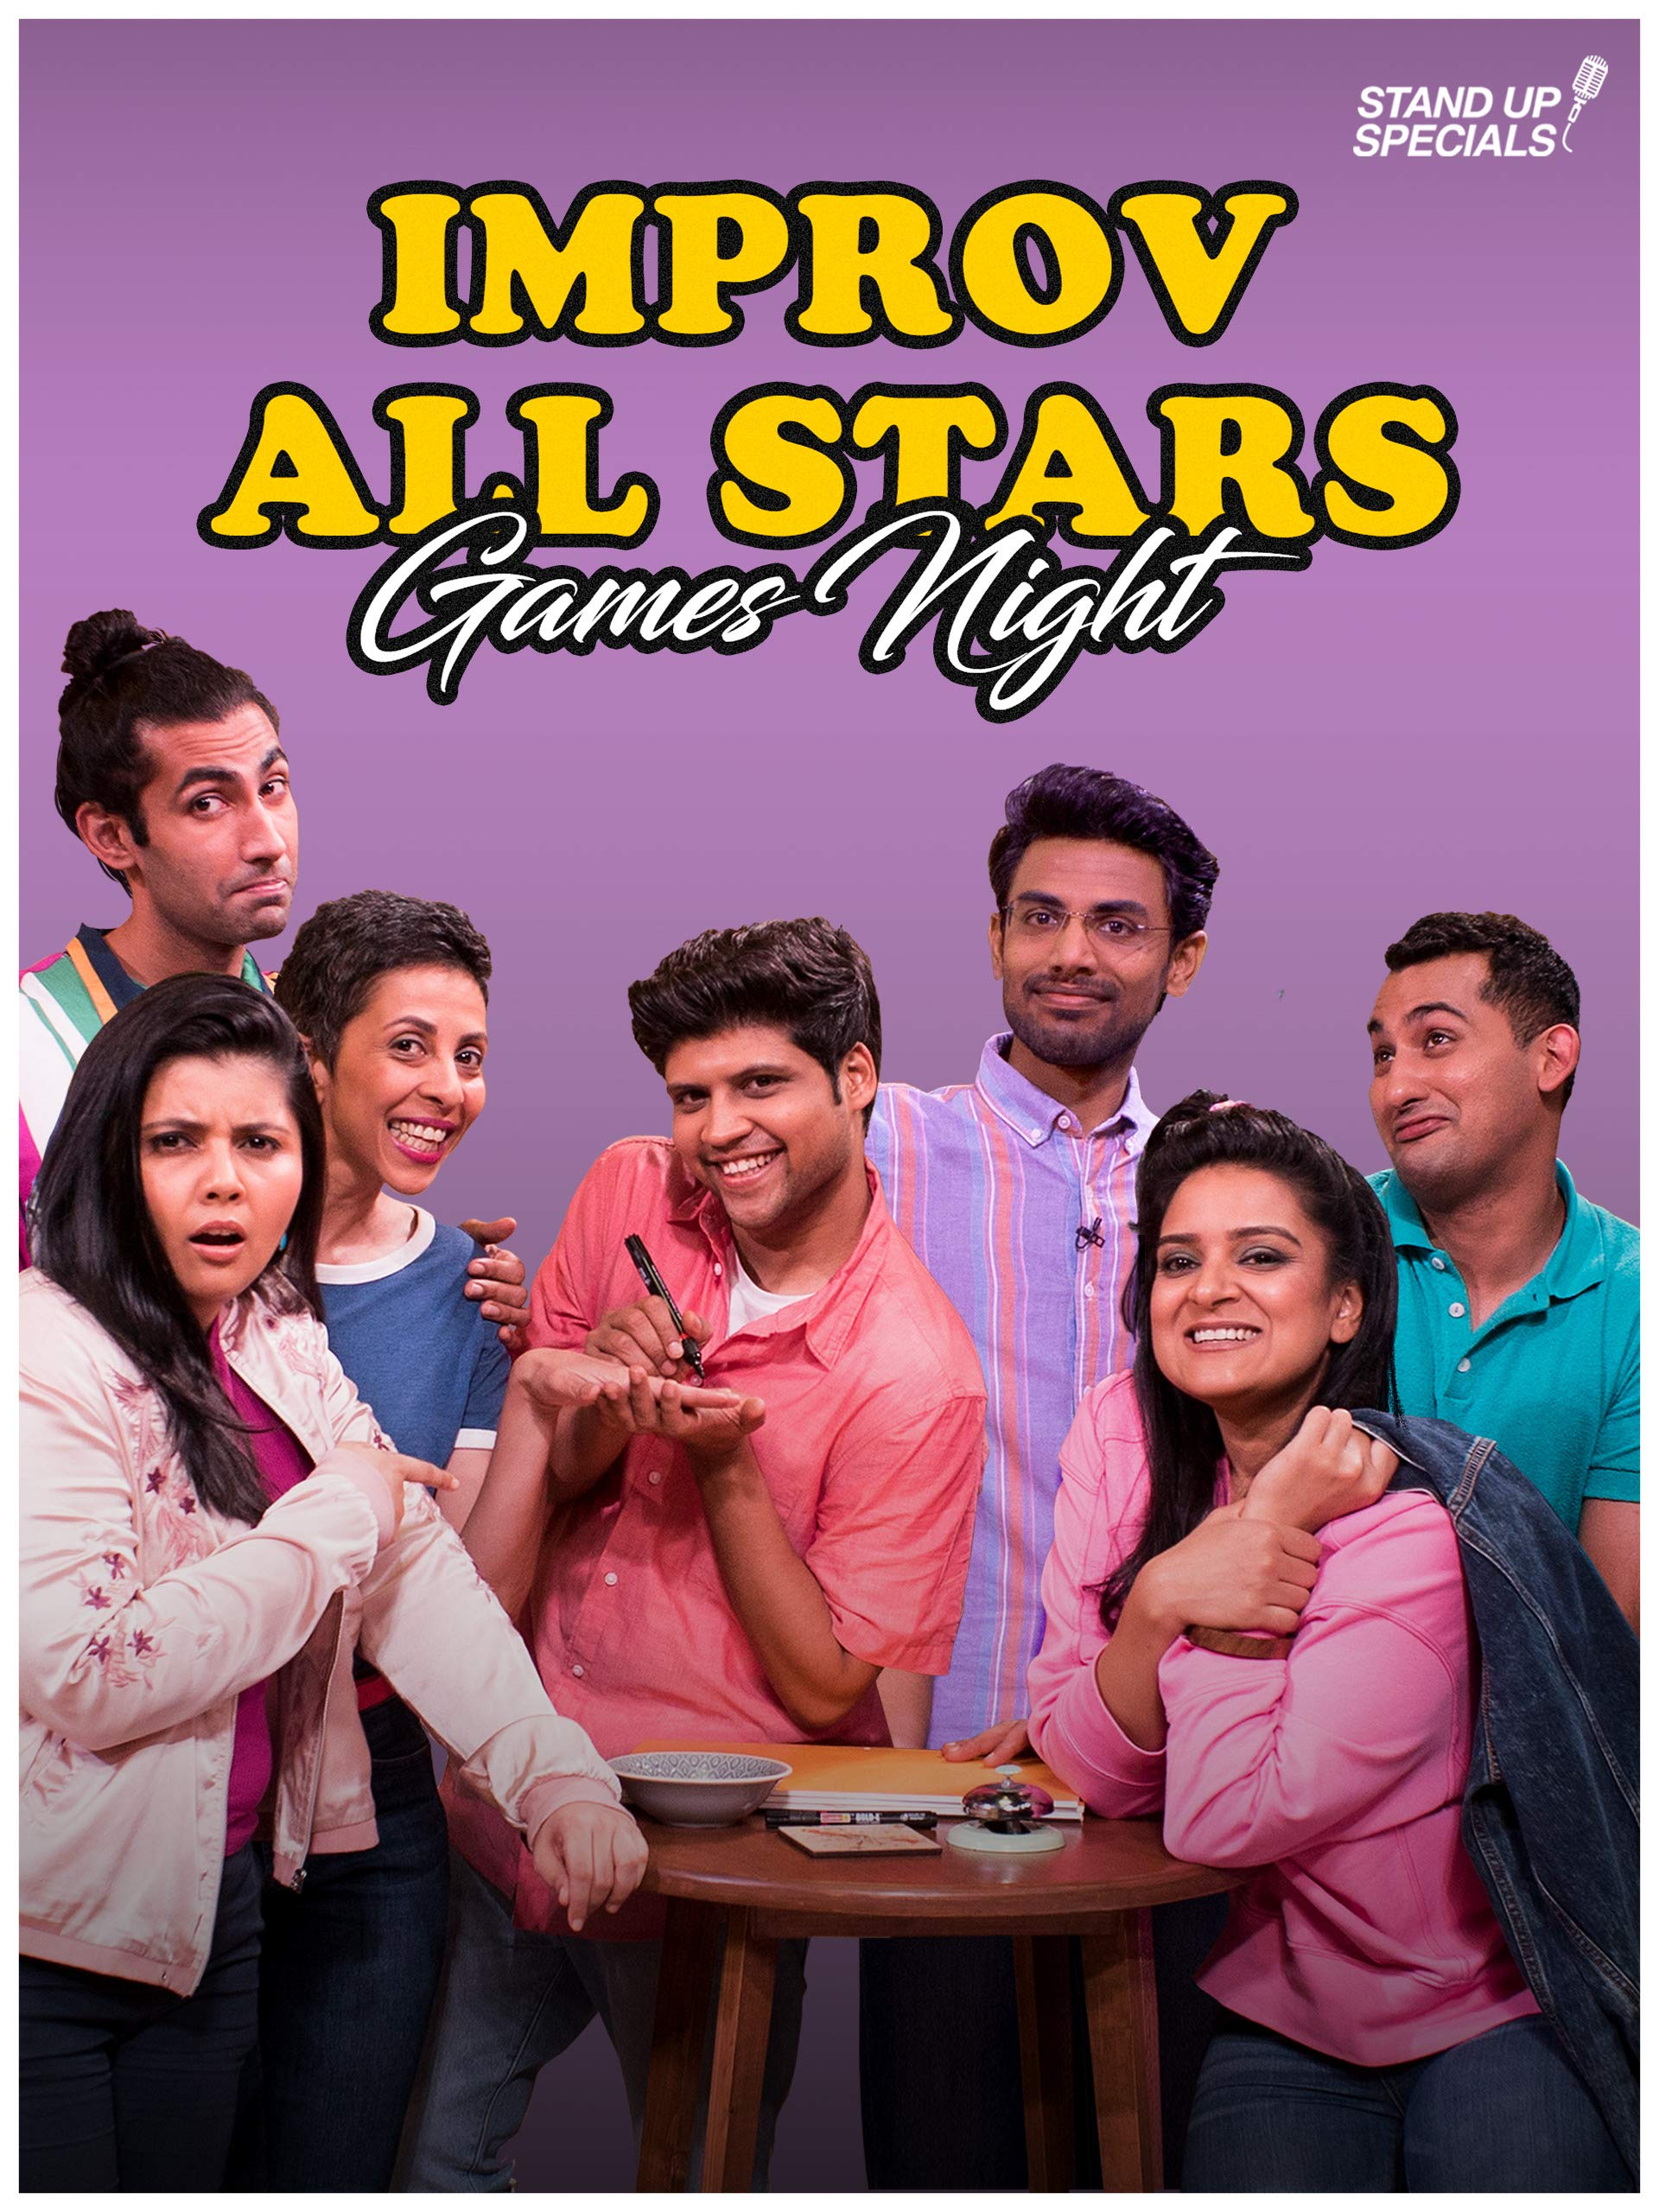 Improv All Stars - Games Night